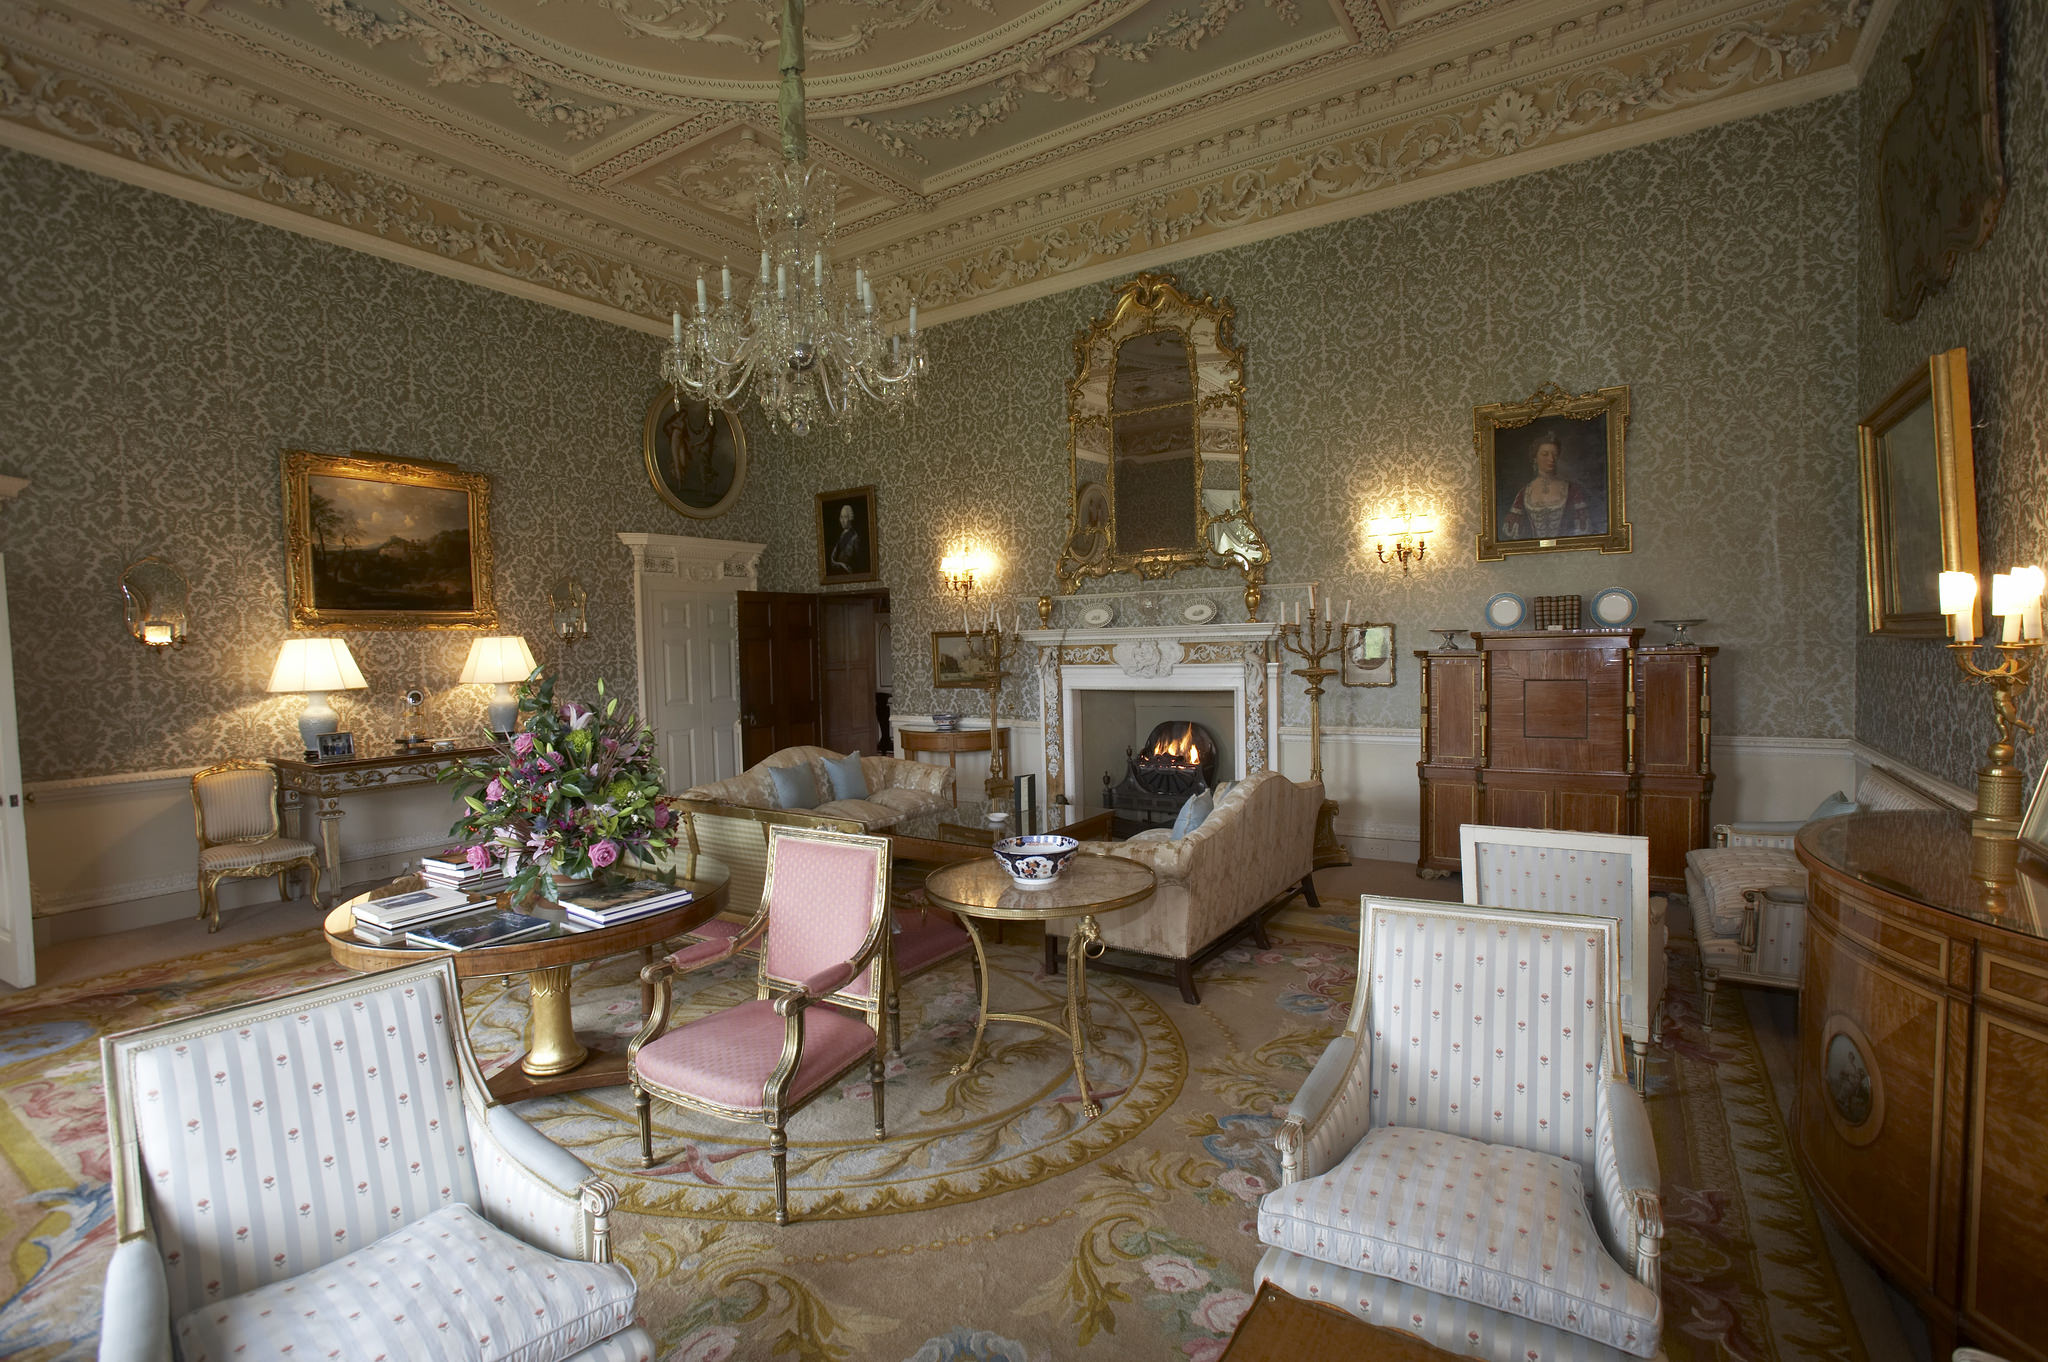 Royal Rooms at the Hotel with Royal History - Hartwell House ...